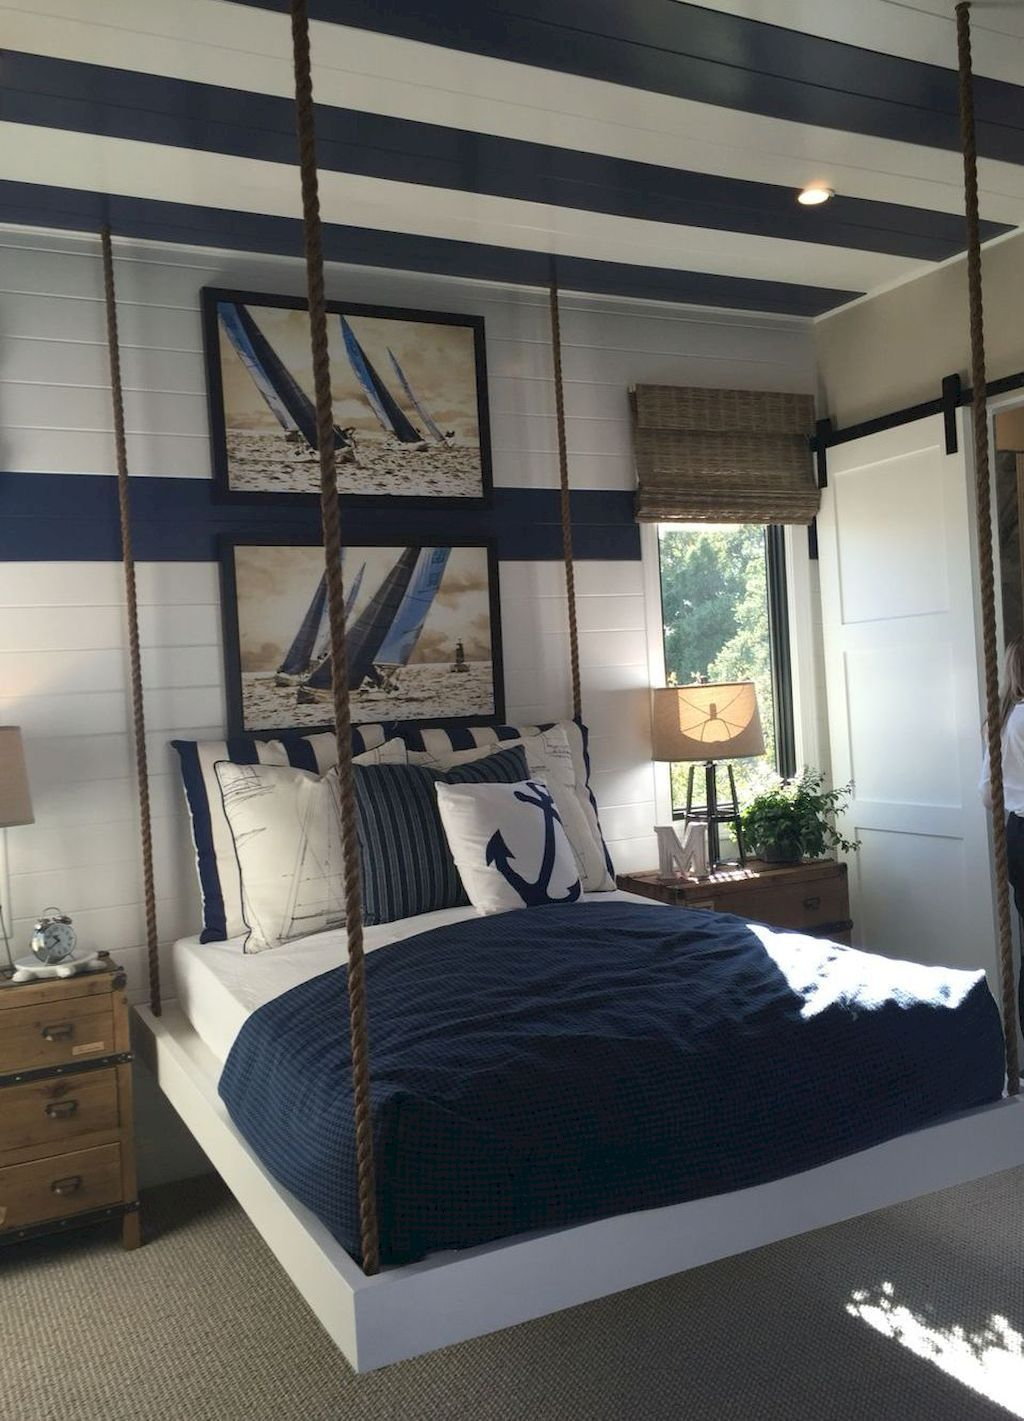 Fine Relax Like On The Beach With Nautical Style Bedroom Decorations The Idea Of Bed In 2020 Coastal Bedroom Decorating Nautical Decor Bedroom Popular Living Room